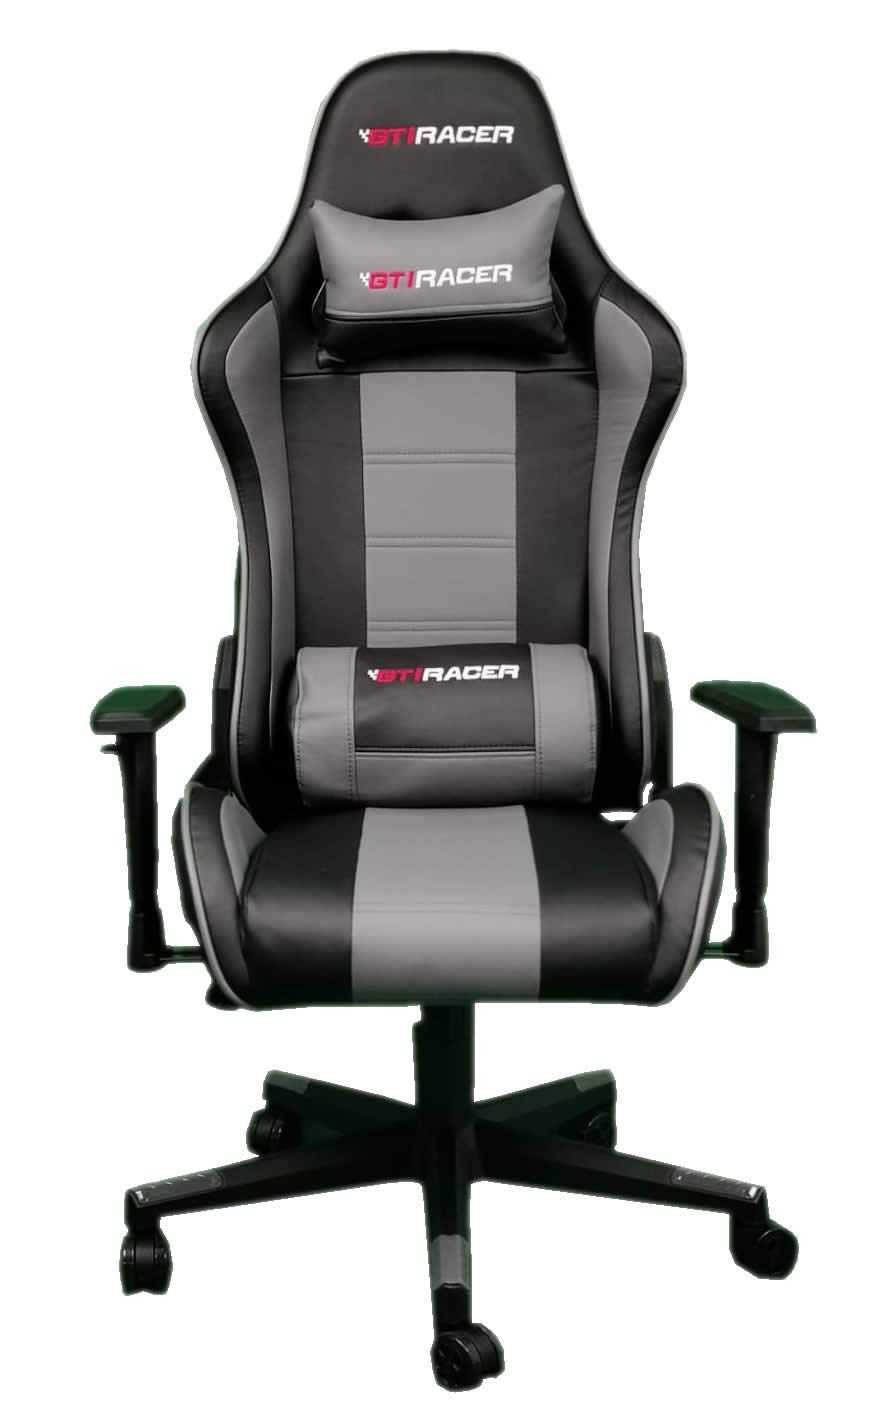 Prime Gti Racer Racing Gaming Chair With Lumbar Support Pvc Leather Office Chair With Adjustable Armrest Recliner Sport Seat For Ultimate Gaming Pdpeps Interior Chair Design Pdpepsorg